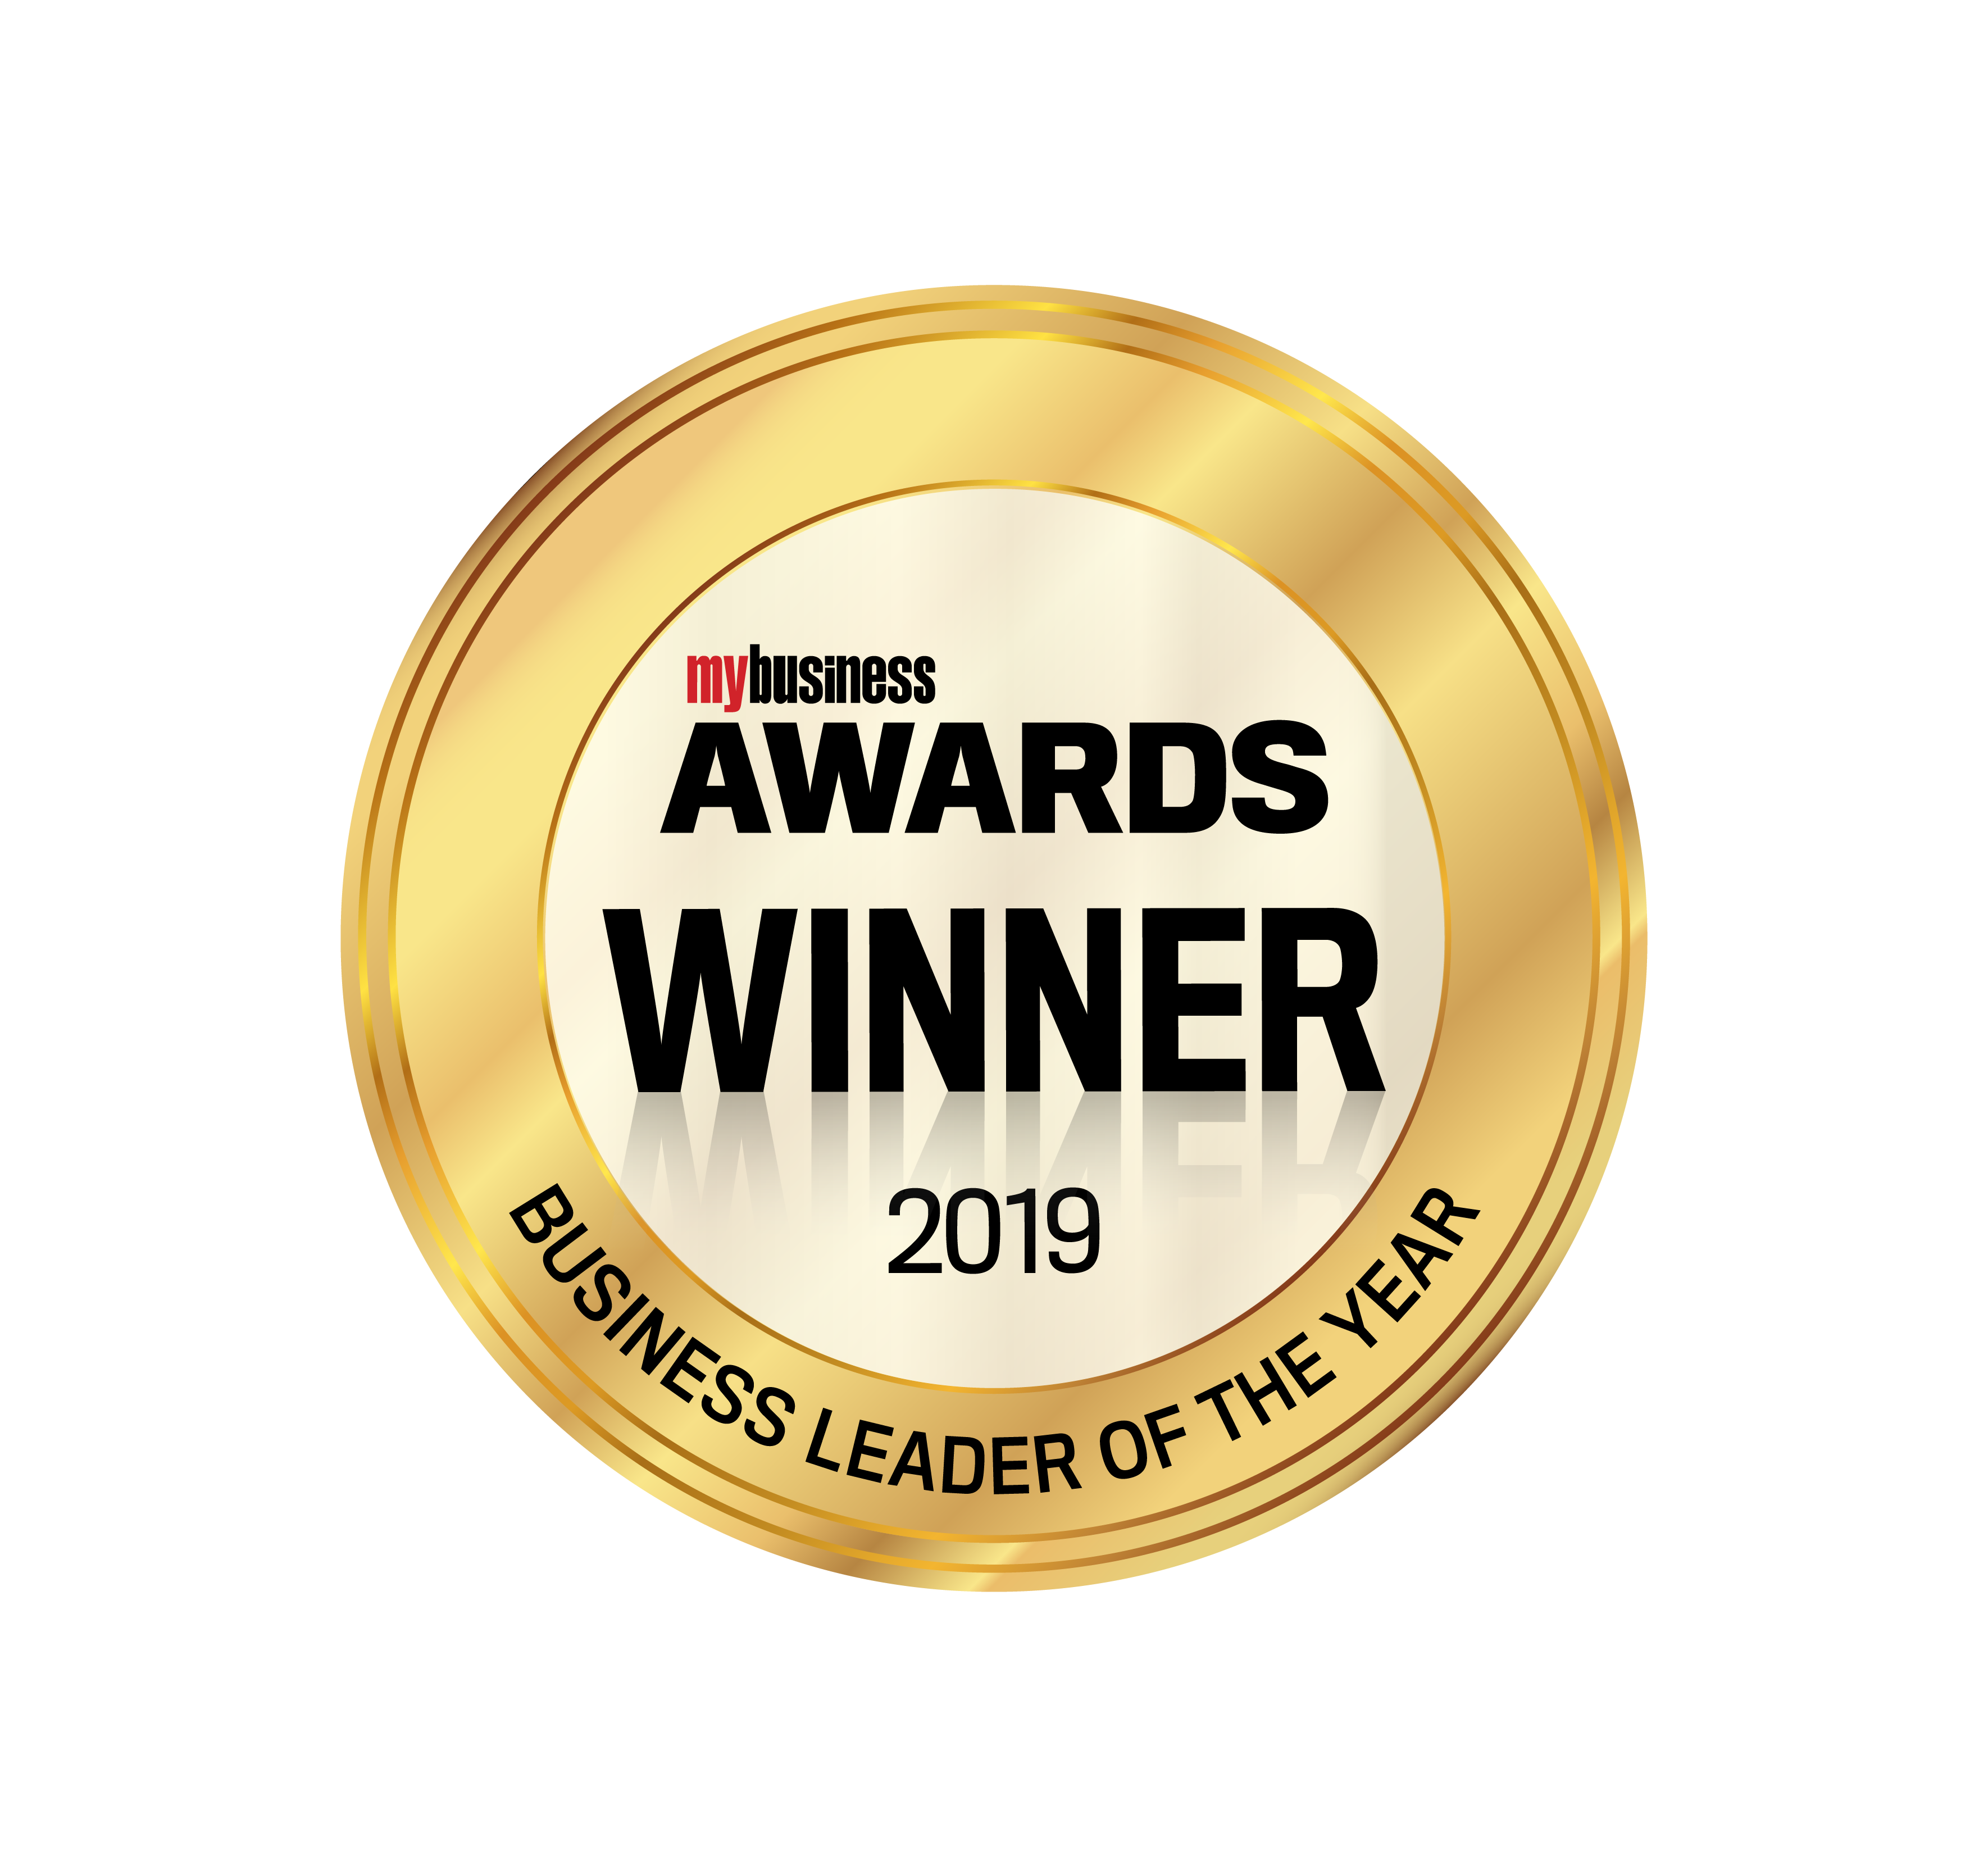 MB_SEAL_2019_Winners_BUSINESS LEADER OF THE YEAR